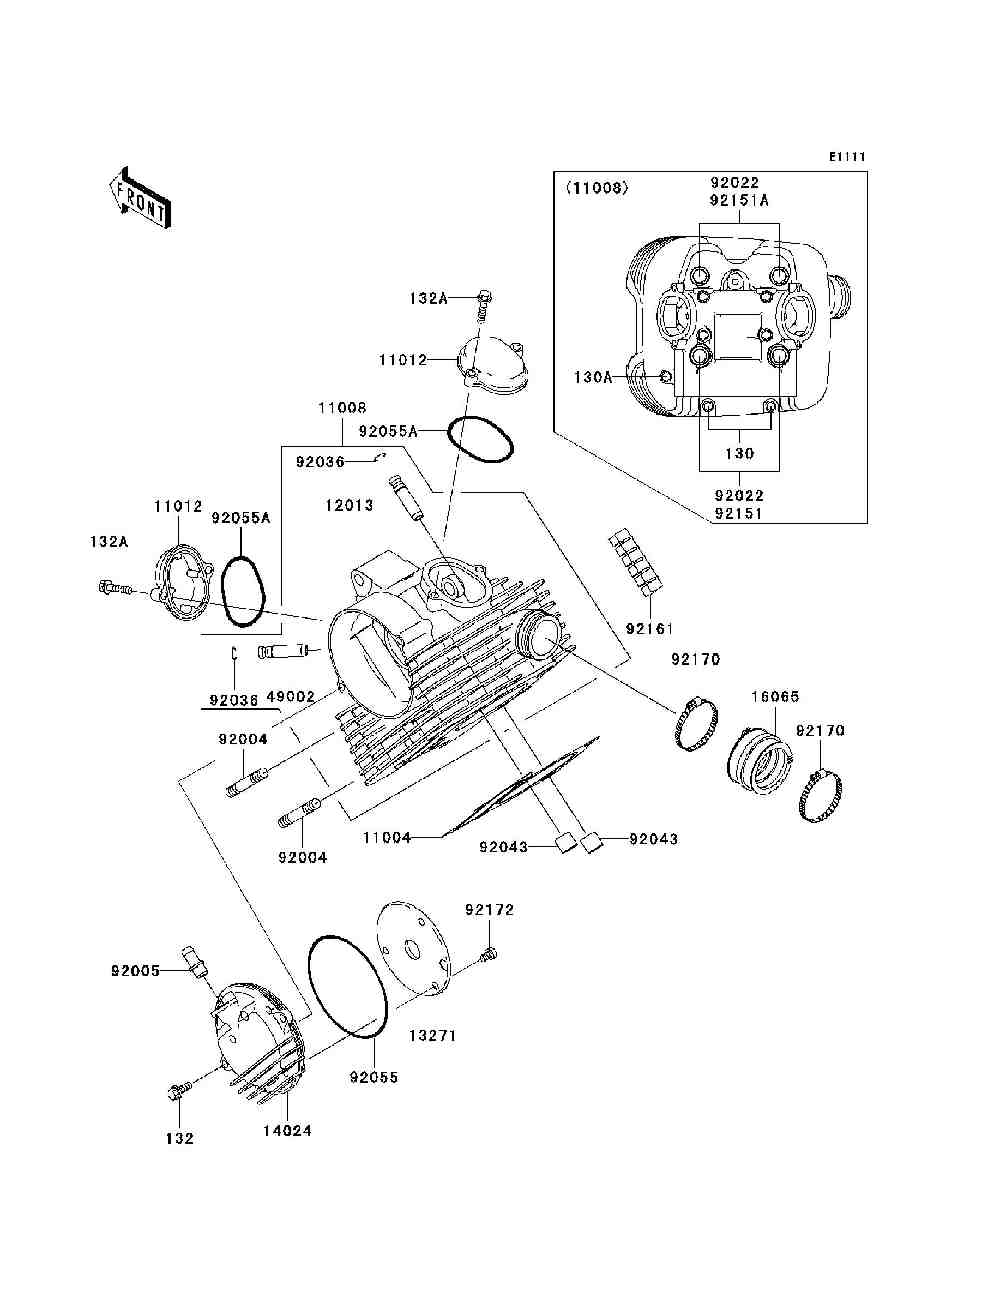 Kawasaki Prairie 360 Parts Diagram Trusted Schematics 2008 650i Fuse Box 2009 Carburetor Electrical Wiring Diagrams Fiche 650